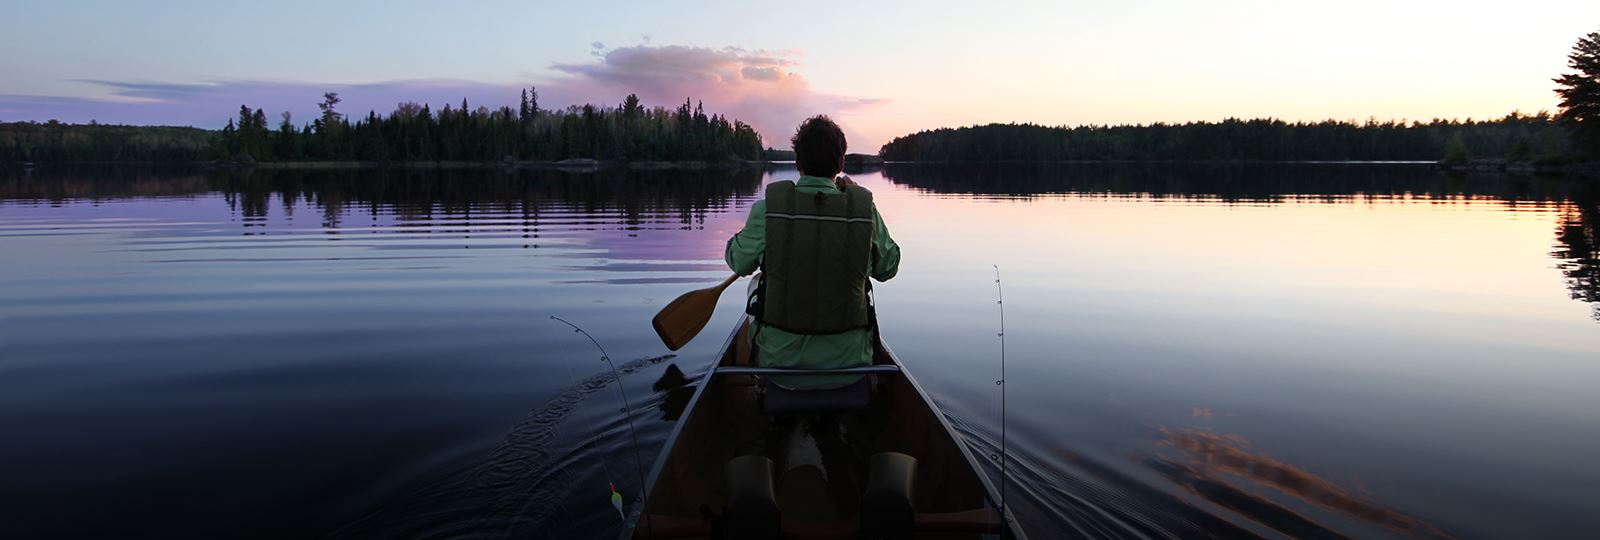 Man in canoe at sunset